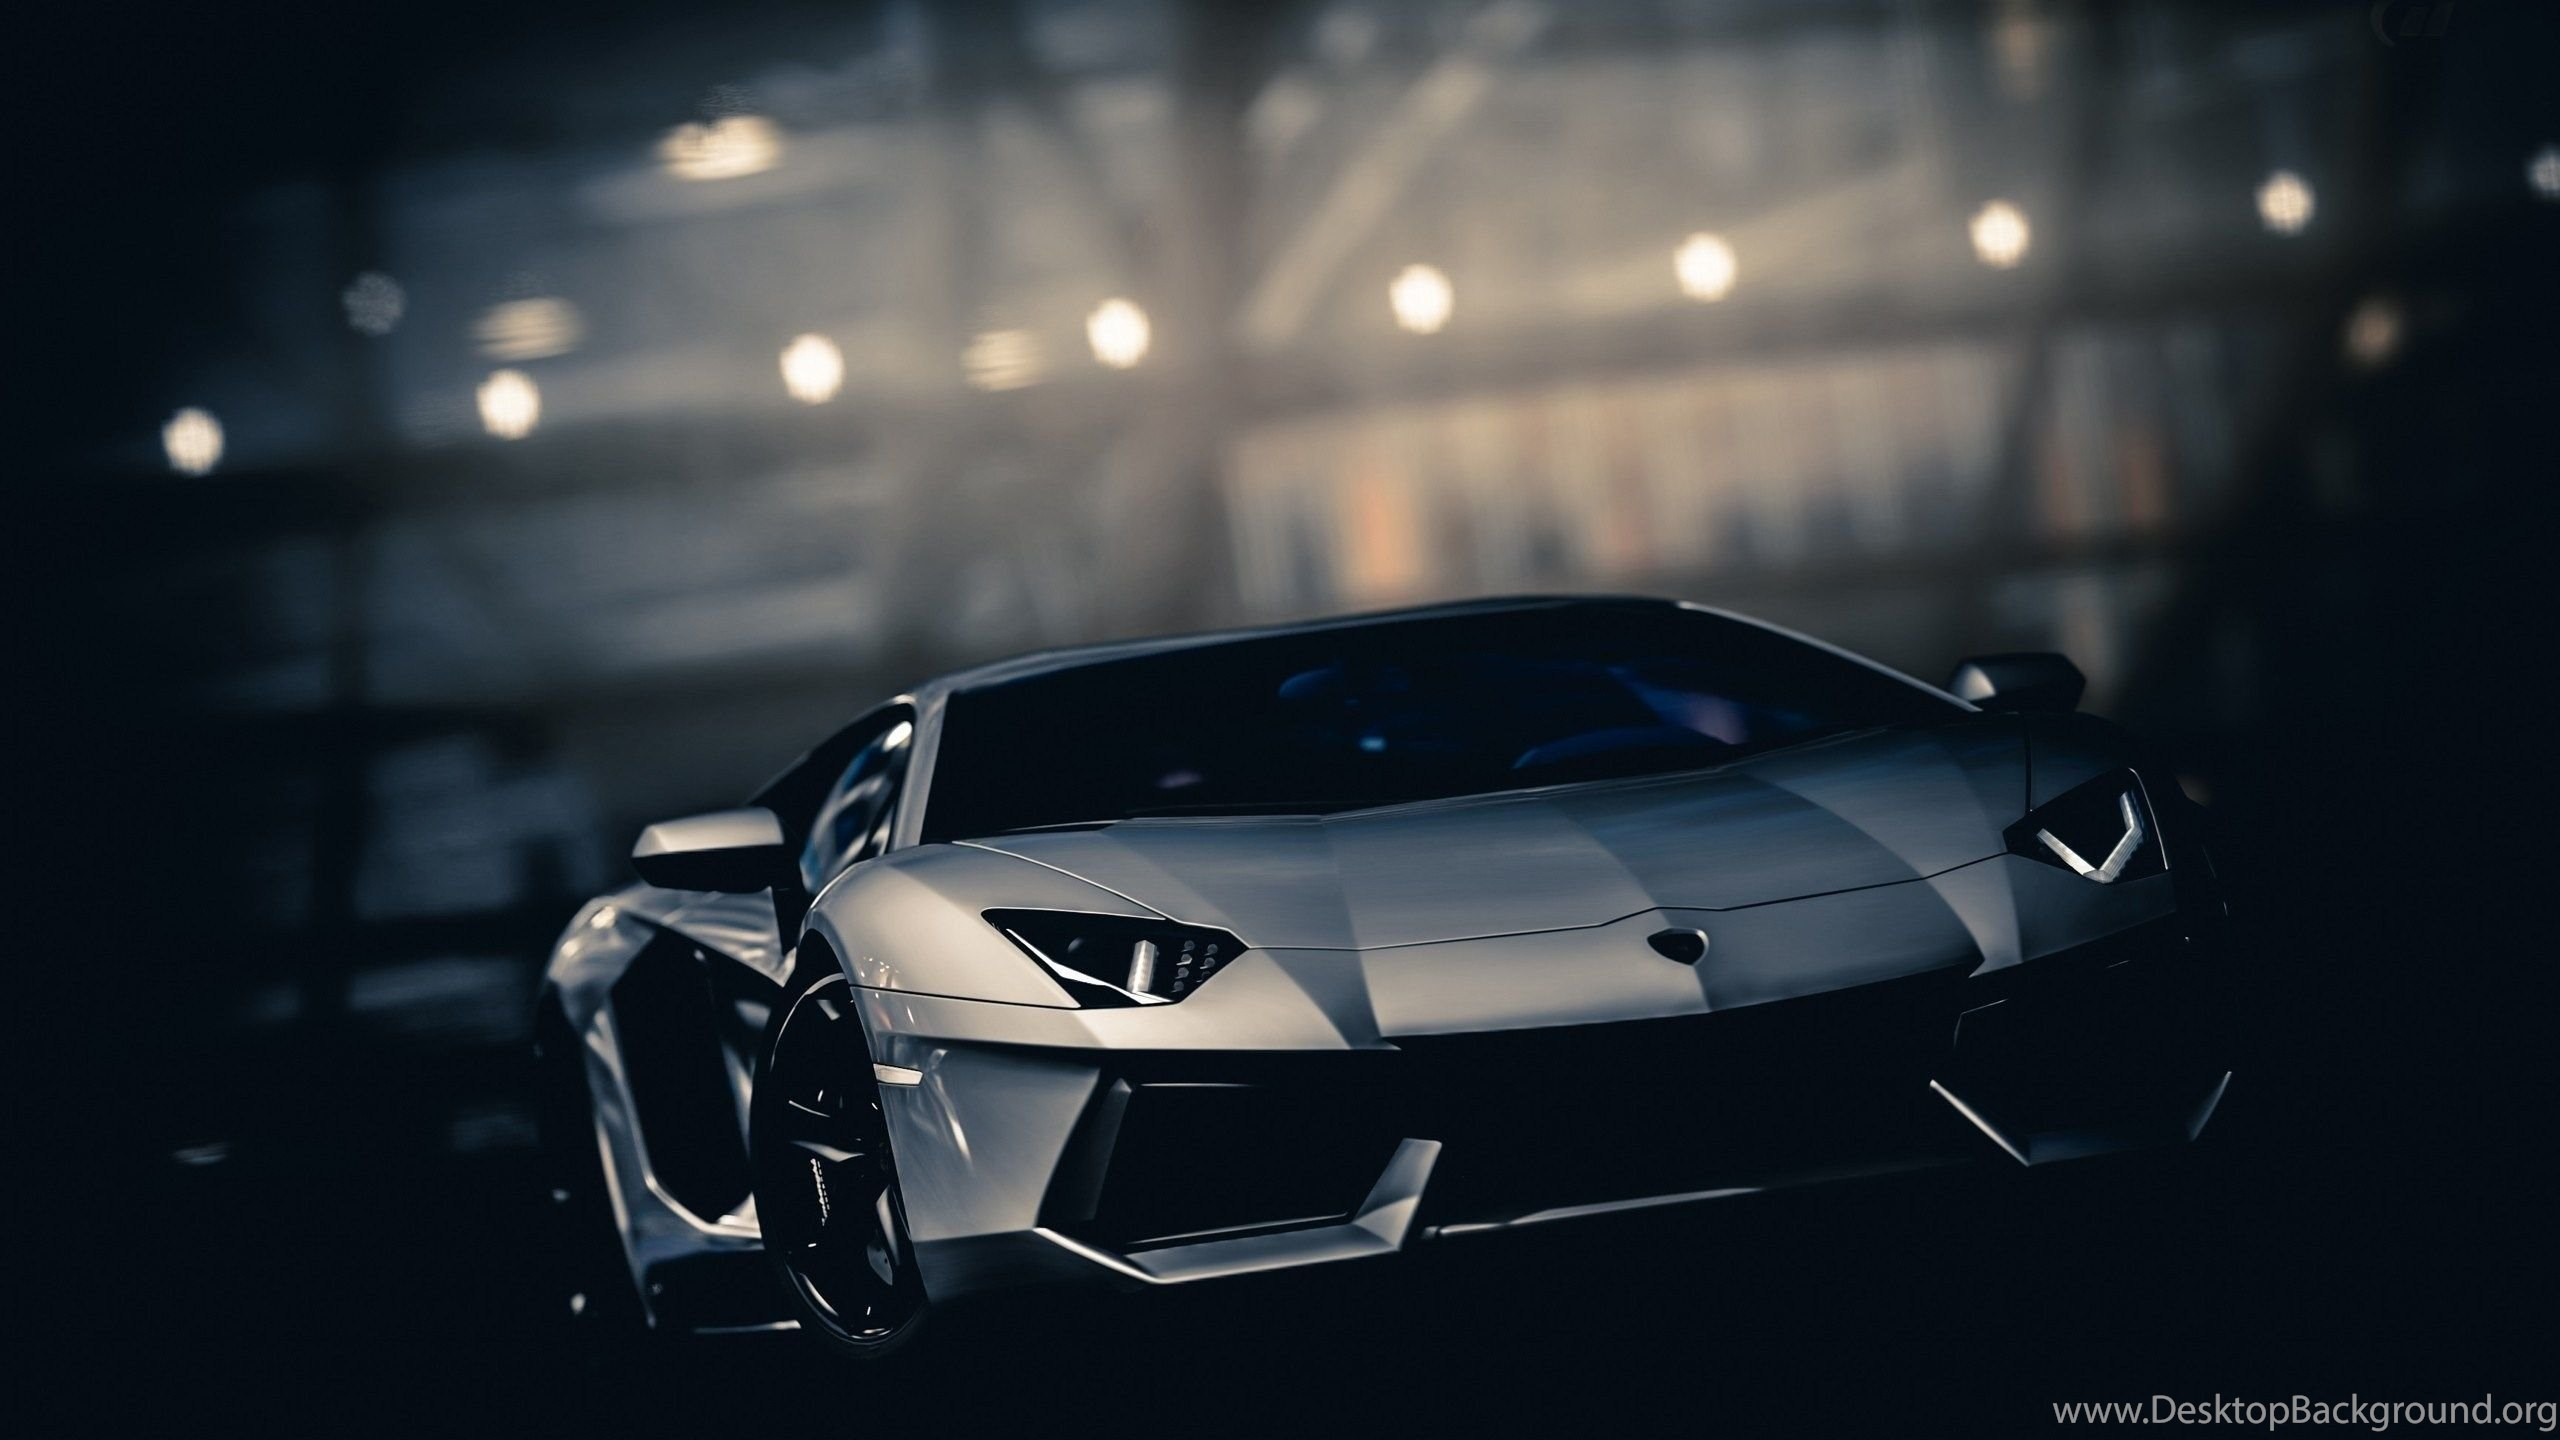 Lamborghini Aventador Wallpapers Hd Download Desktop Background